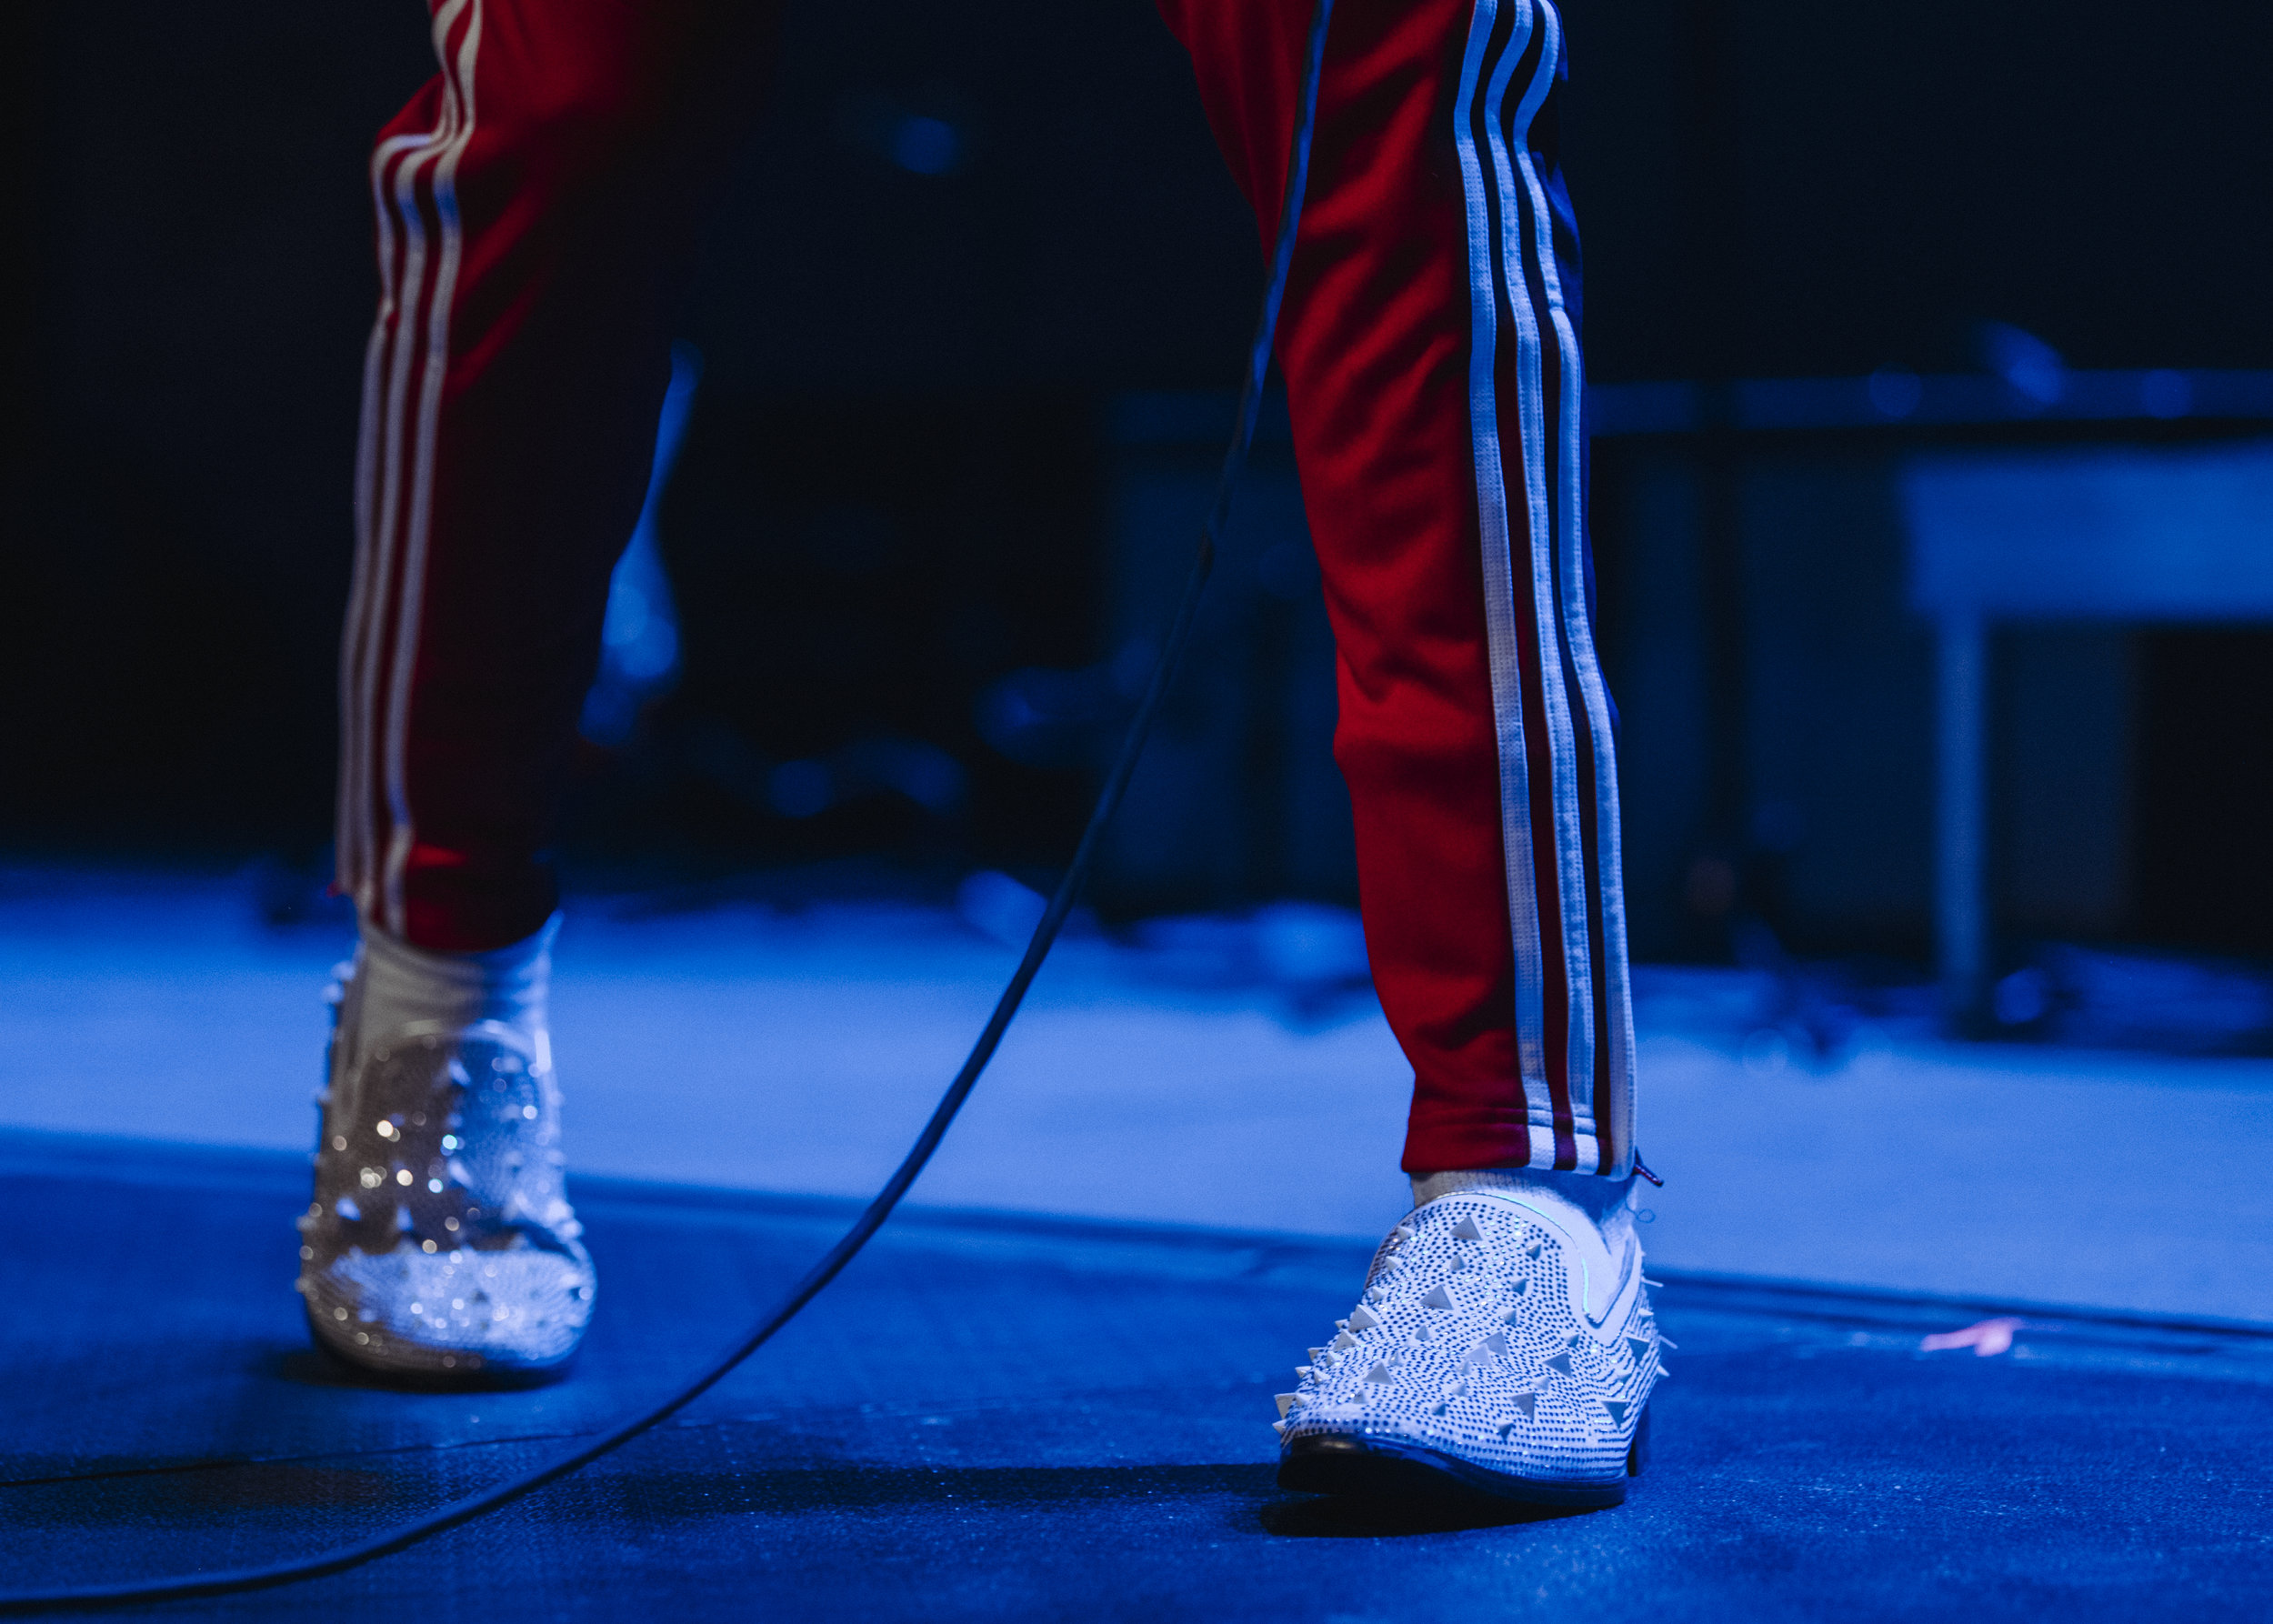 Joywave Favorites | Nicole Bissey Photography 07JOYWAVE.JPG